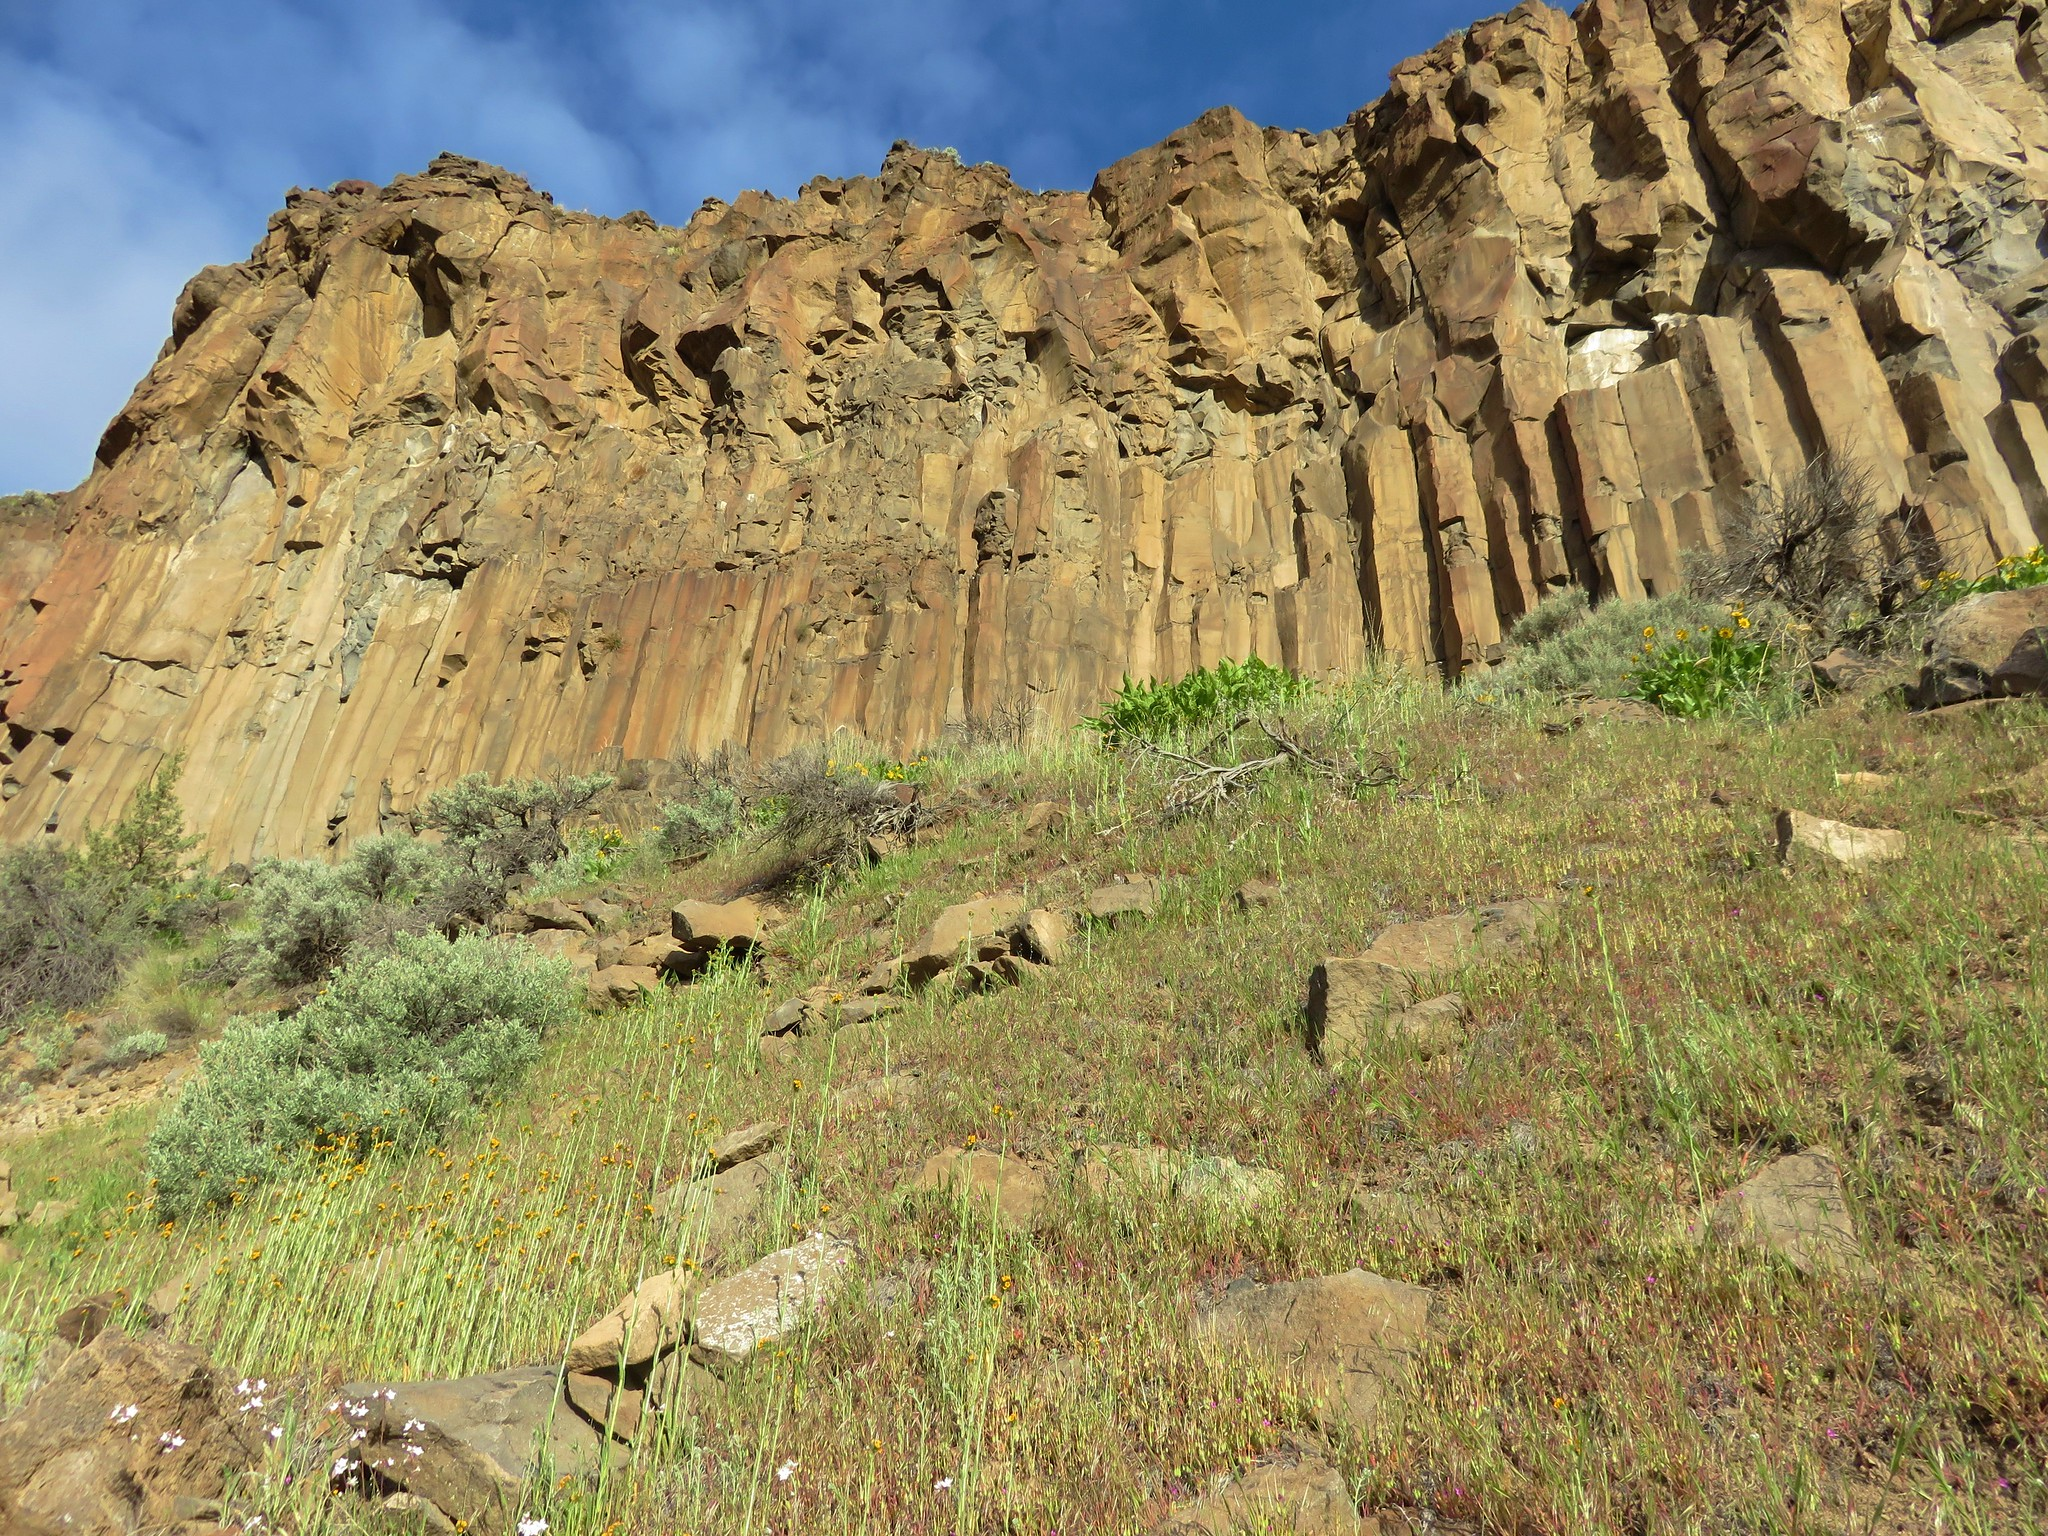 Wildflowers below columnar basalt